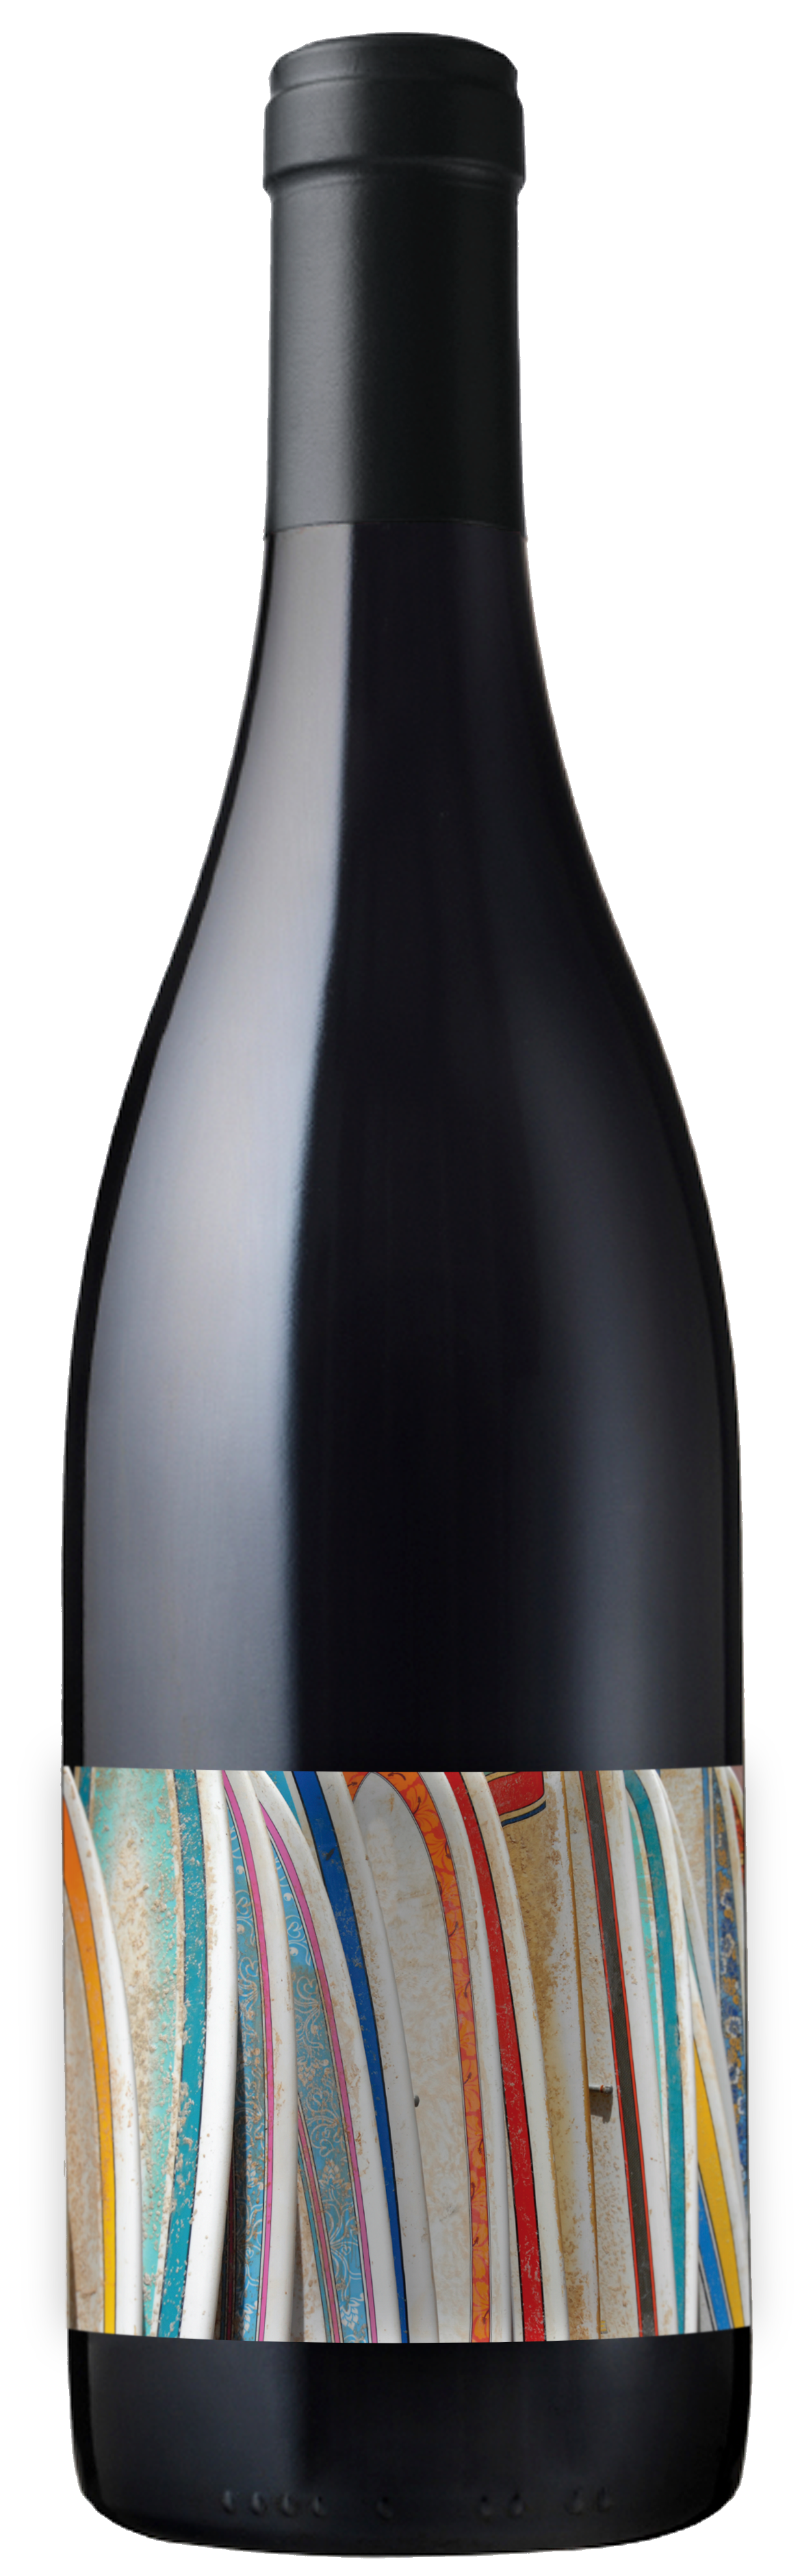 Product Image for 2018 Surfrider Pinot Noir